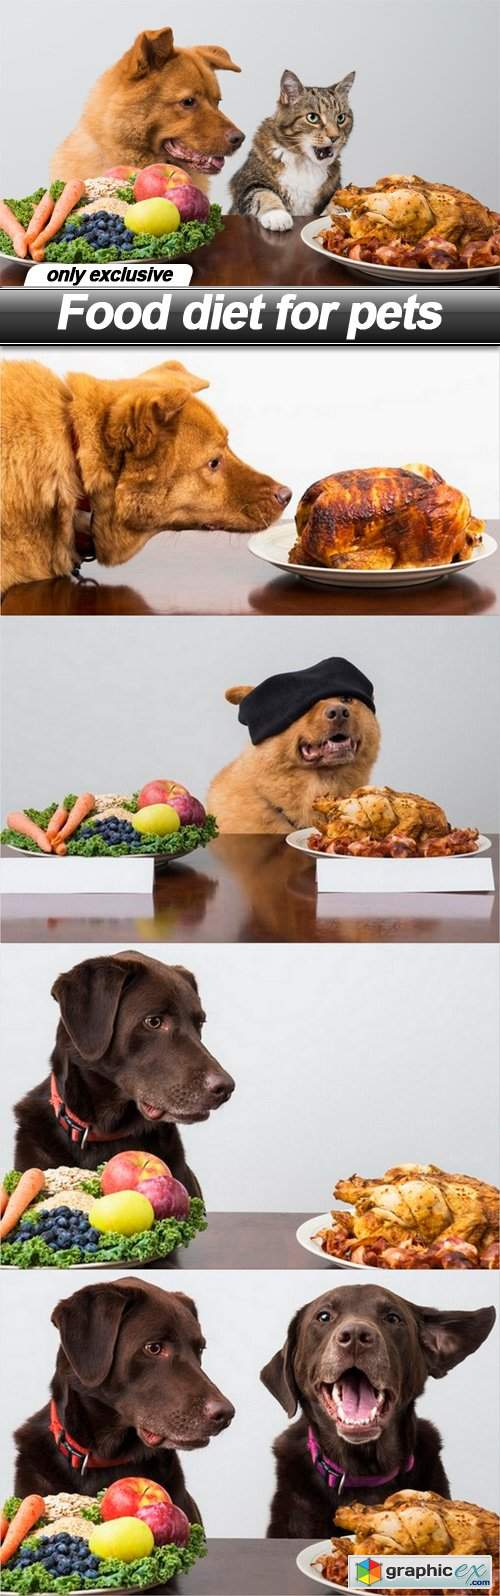 Food diet for pets - 5 UHQ JPEG